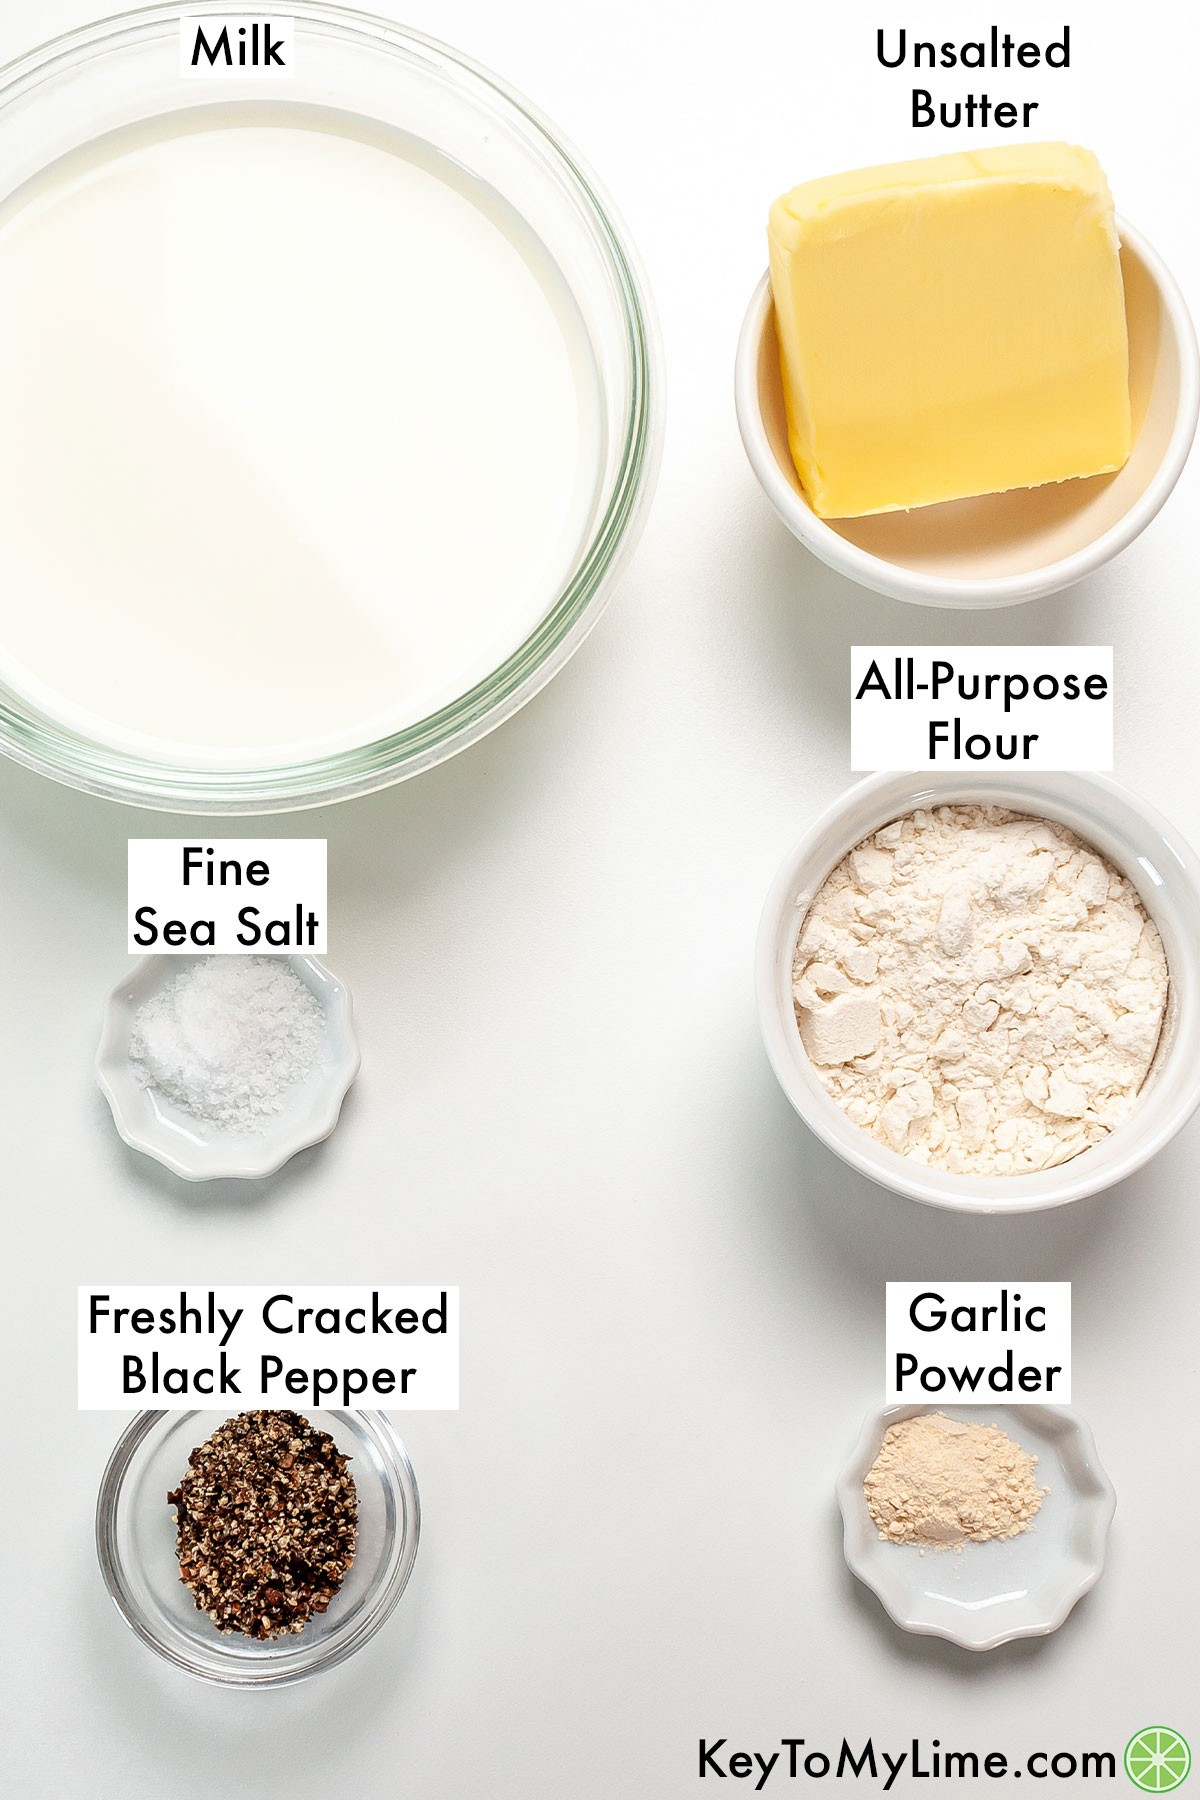 The labeled ingredients to make country gravy.